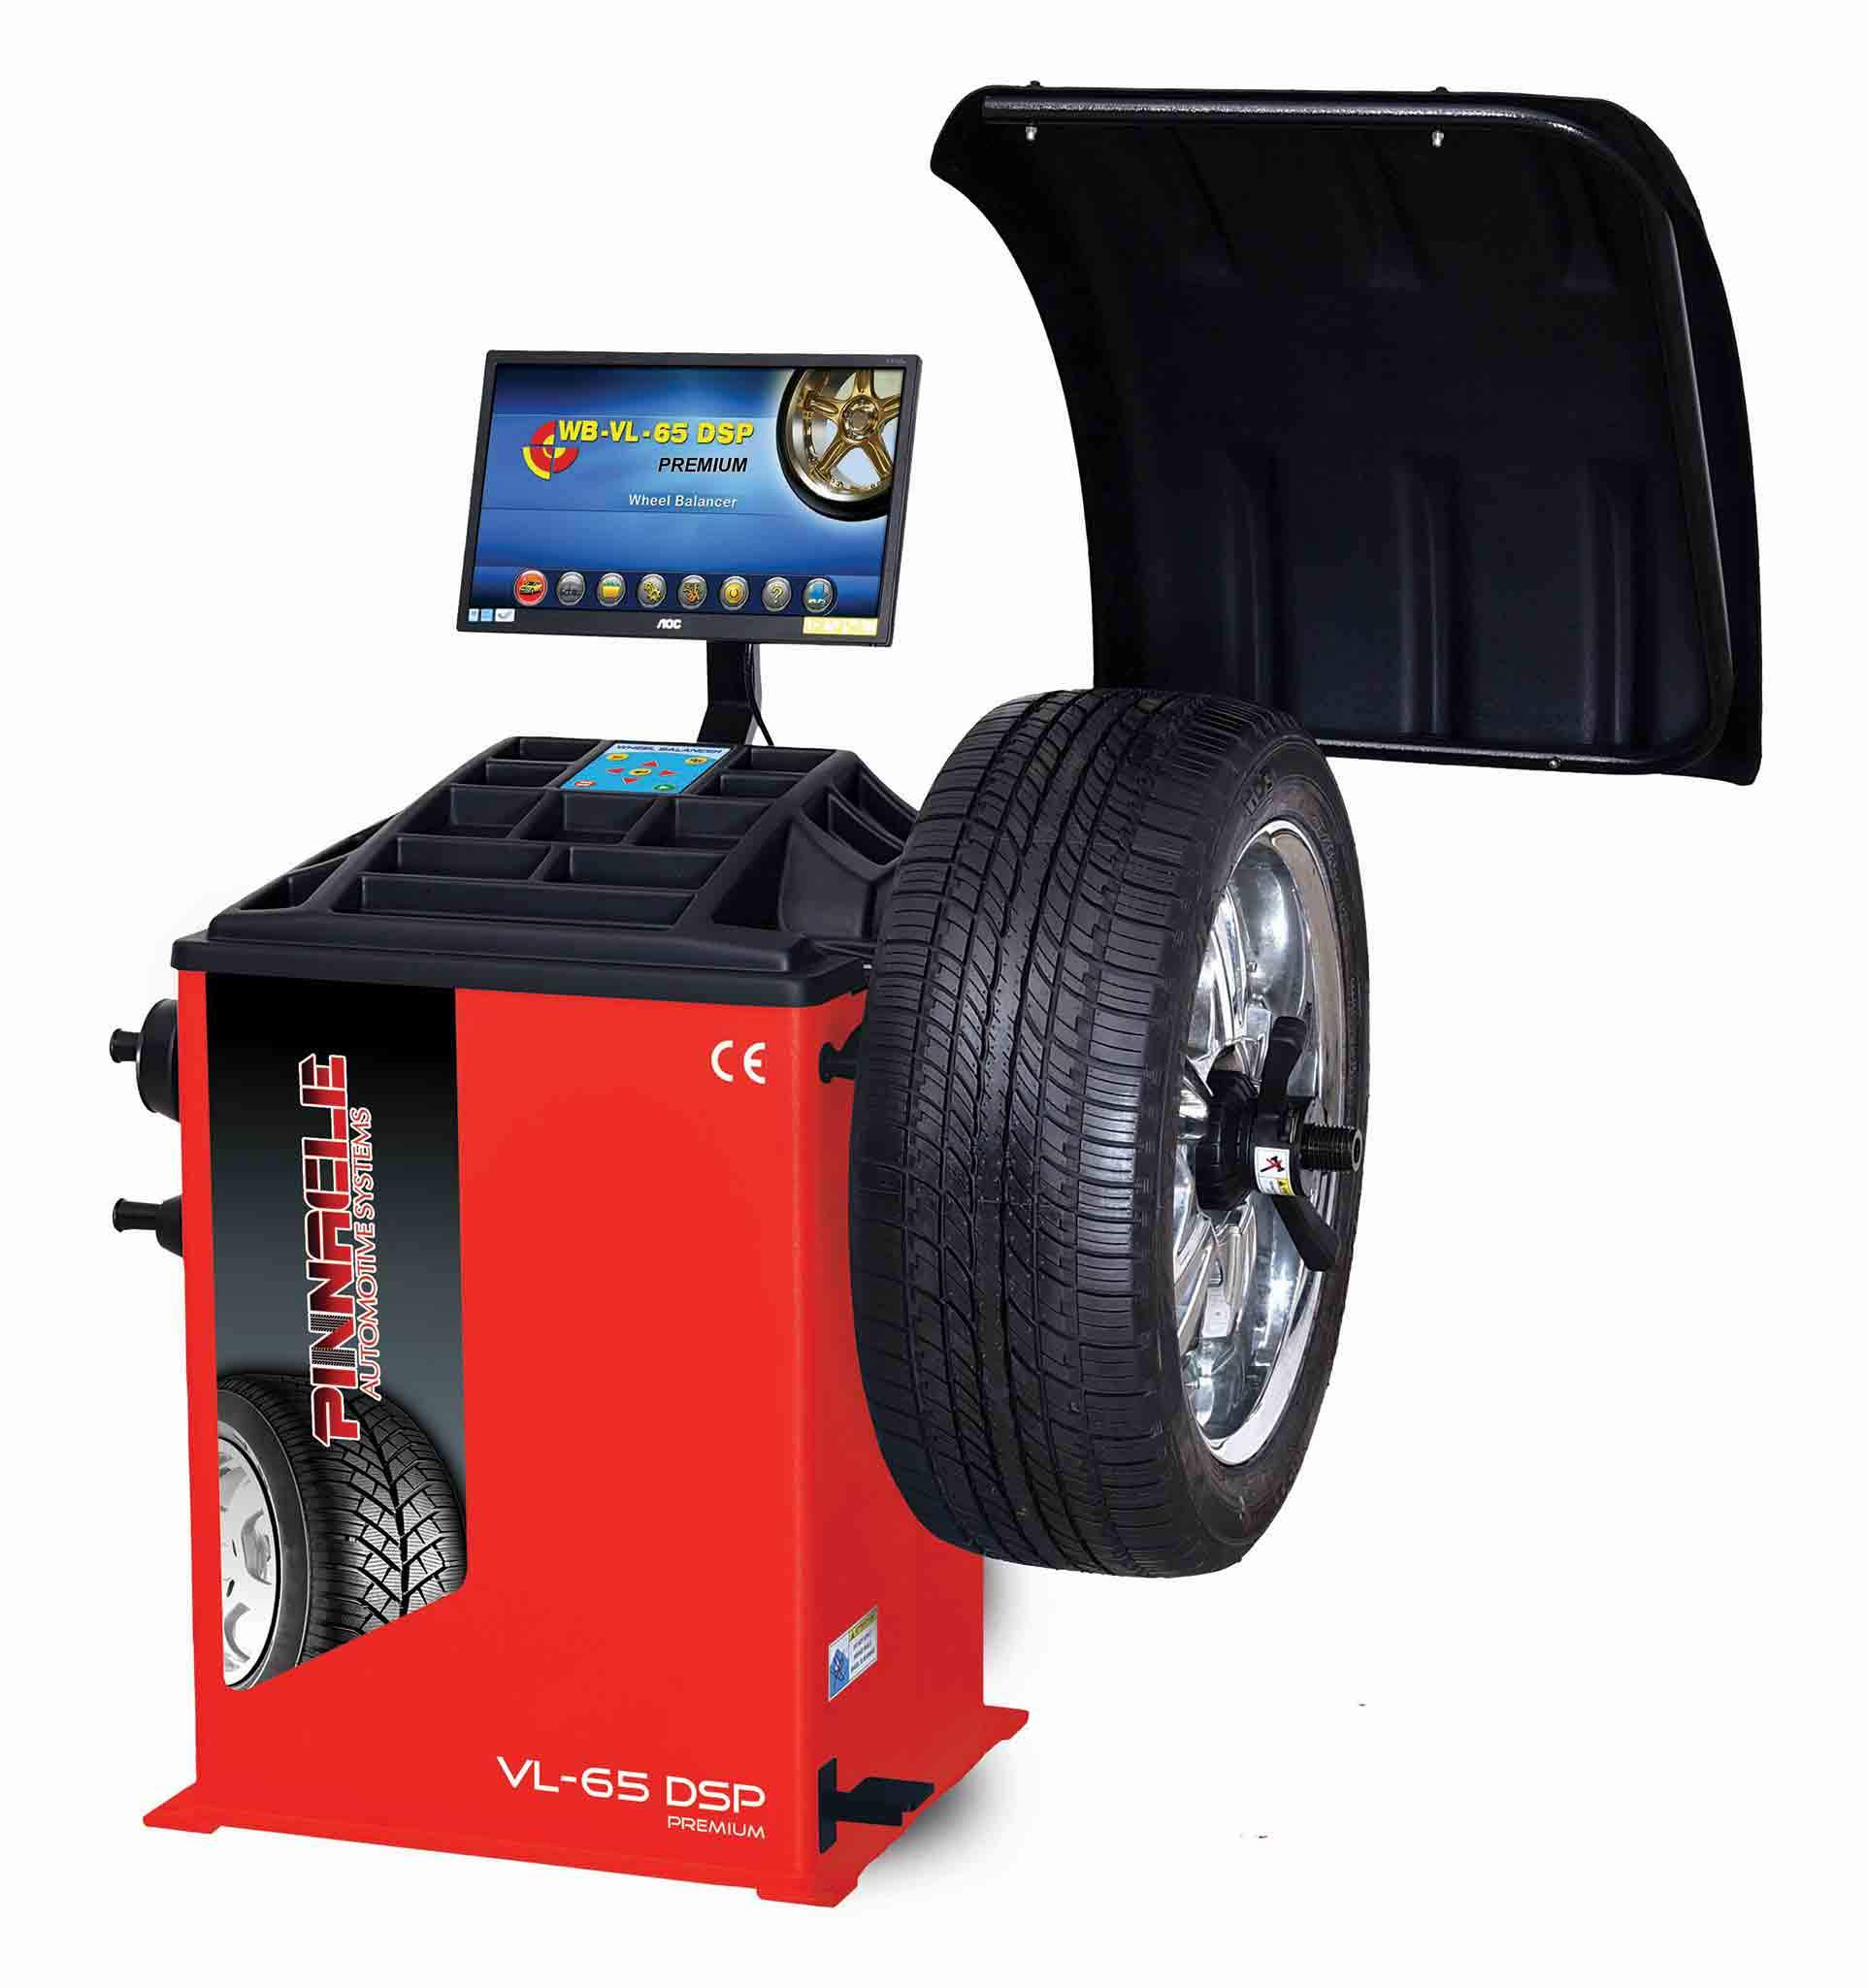 VL-65 DSP LX Premium Wheel Balancer